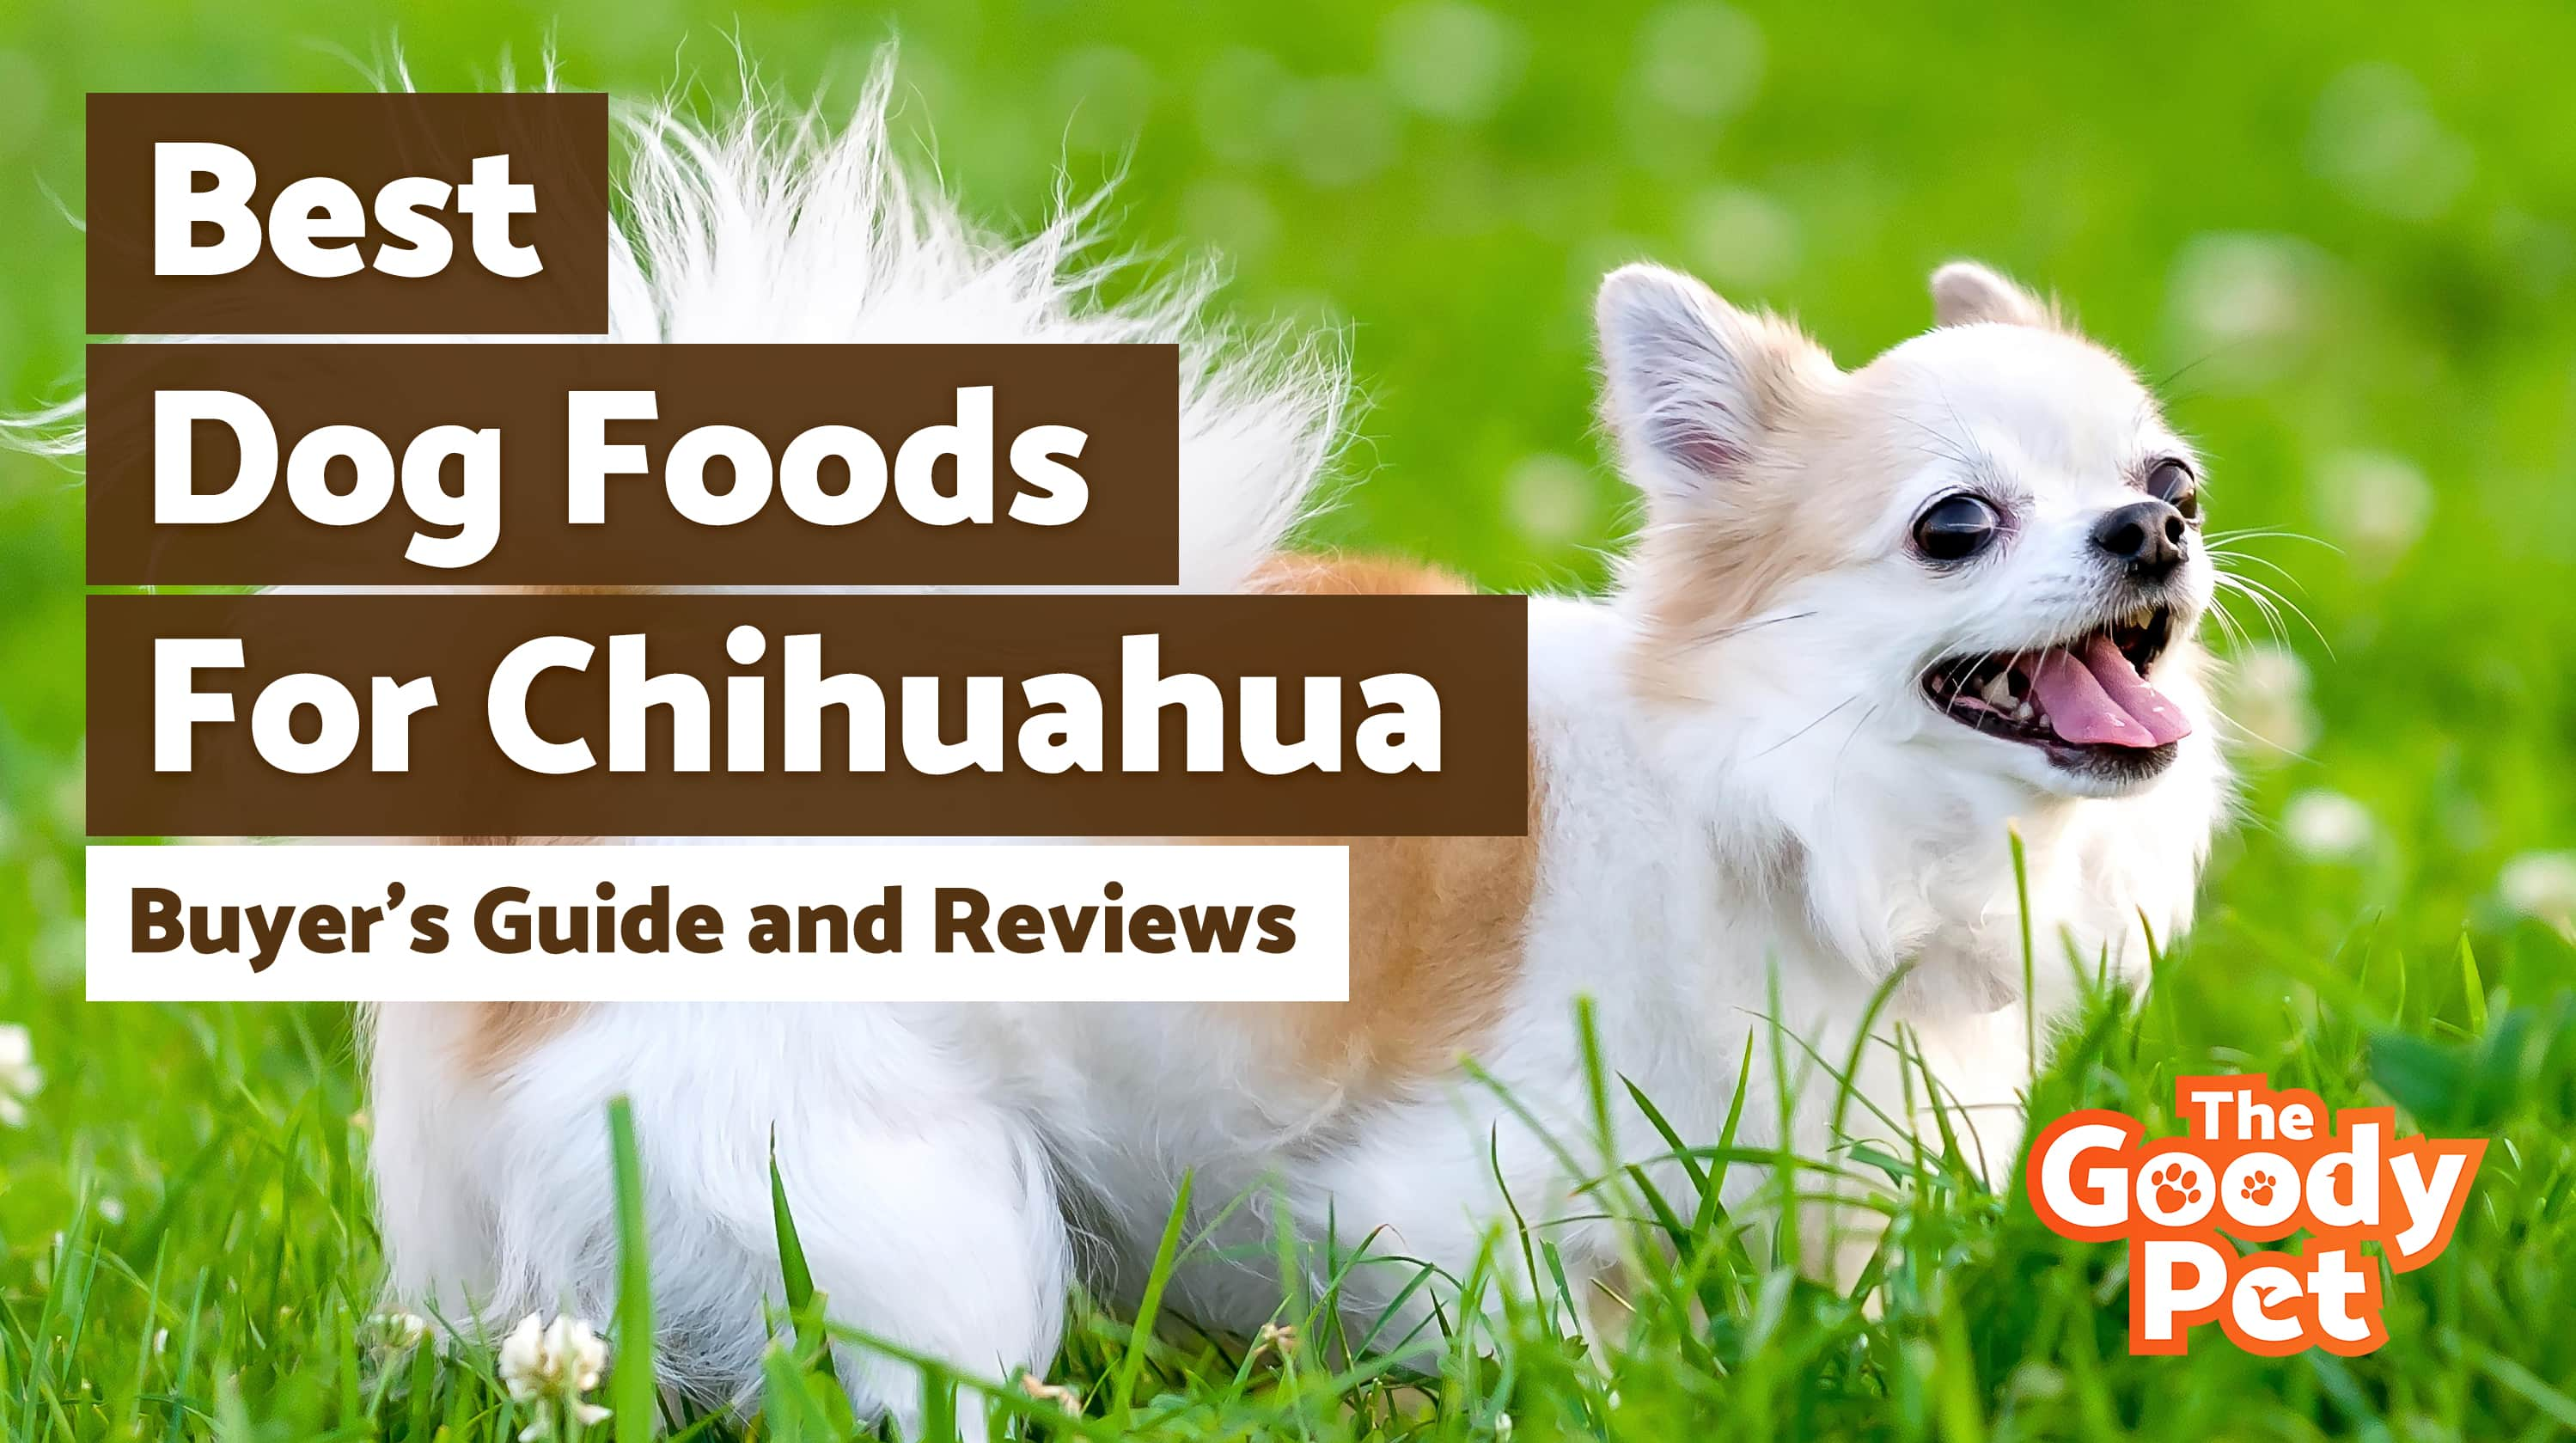 8 Best Dog Foods For Chihuahua (May 2019) | Buyer's Guide & Reviews | The Goody Pet